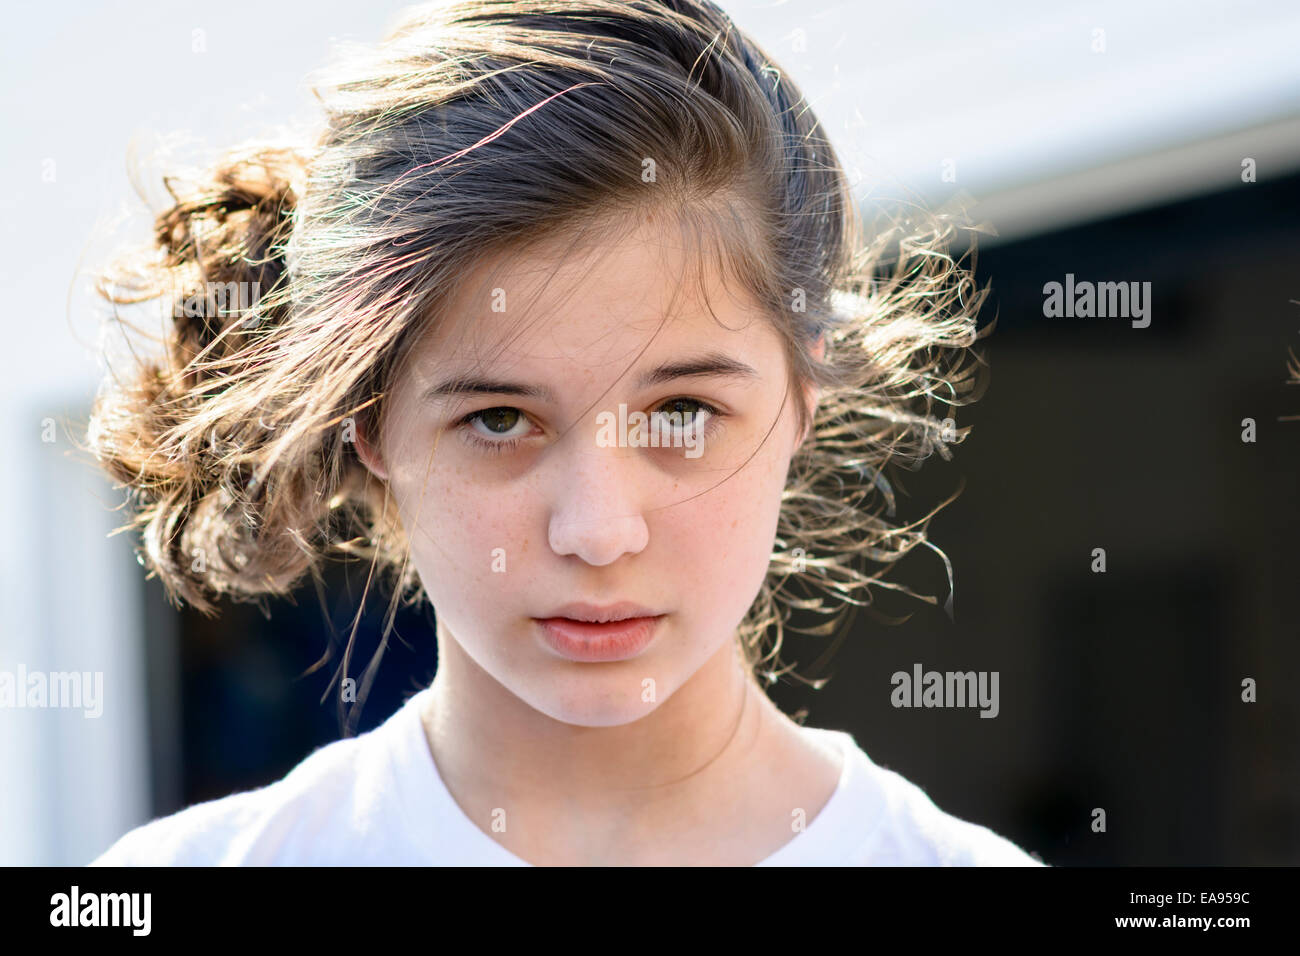 american female teenager anxious - Stock Image